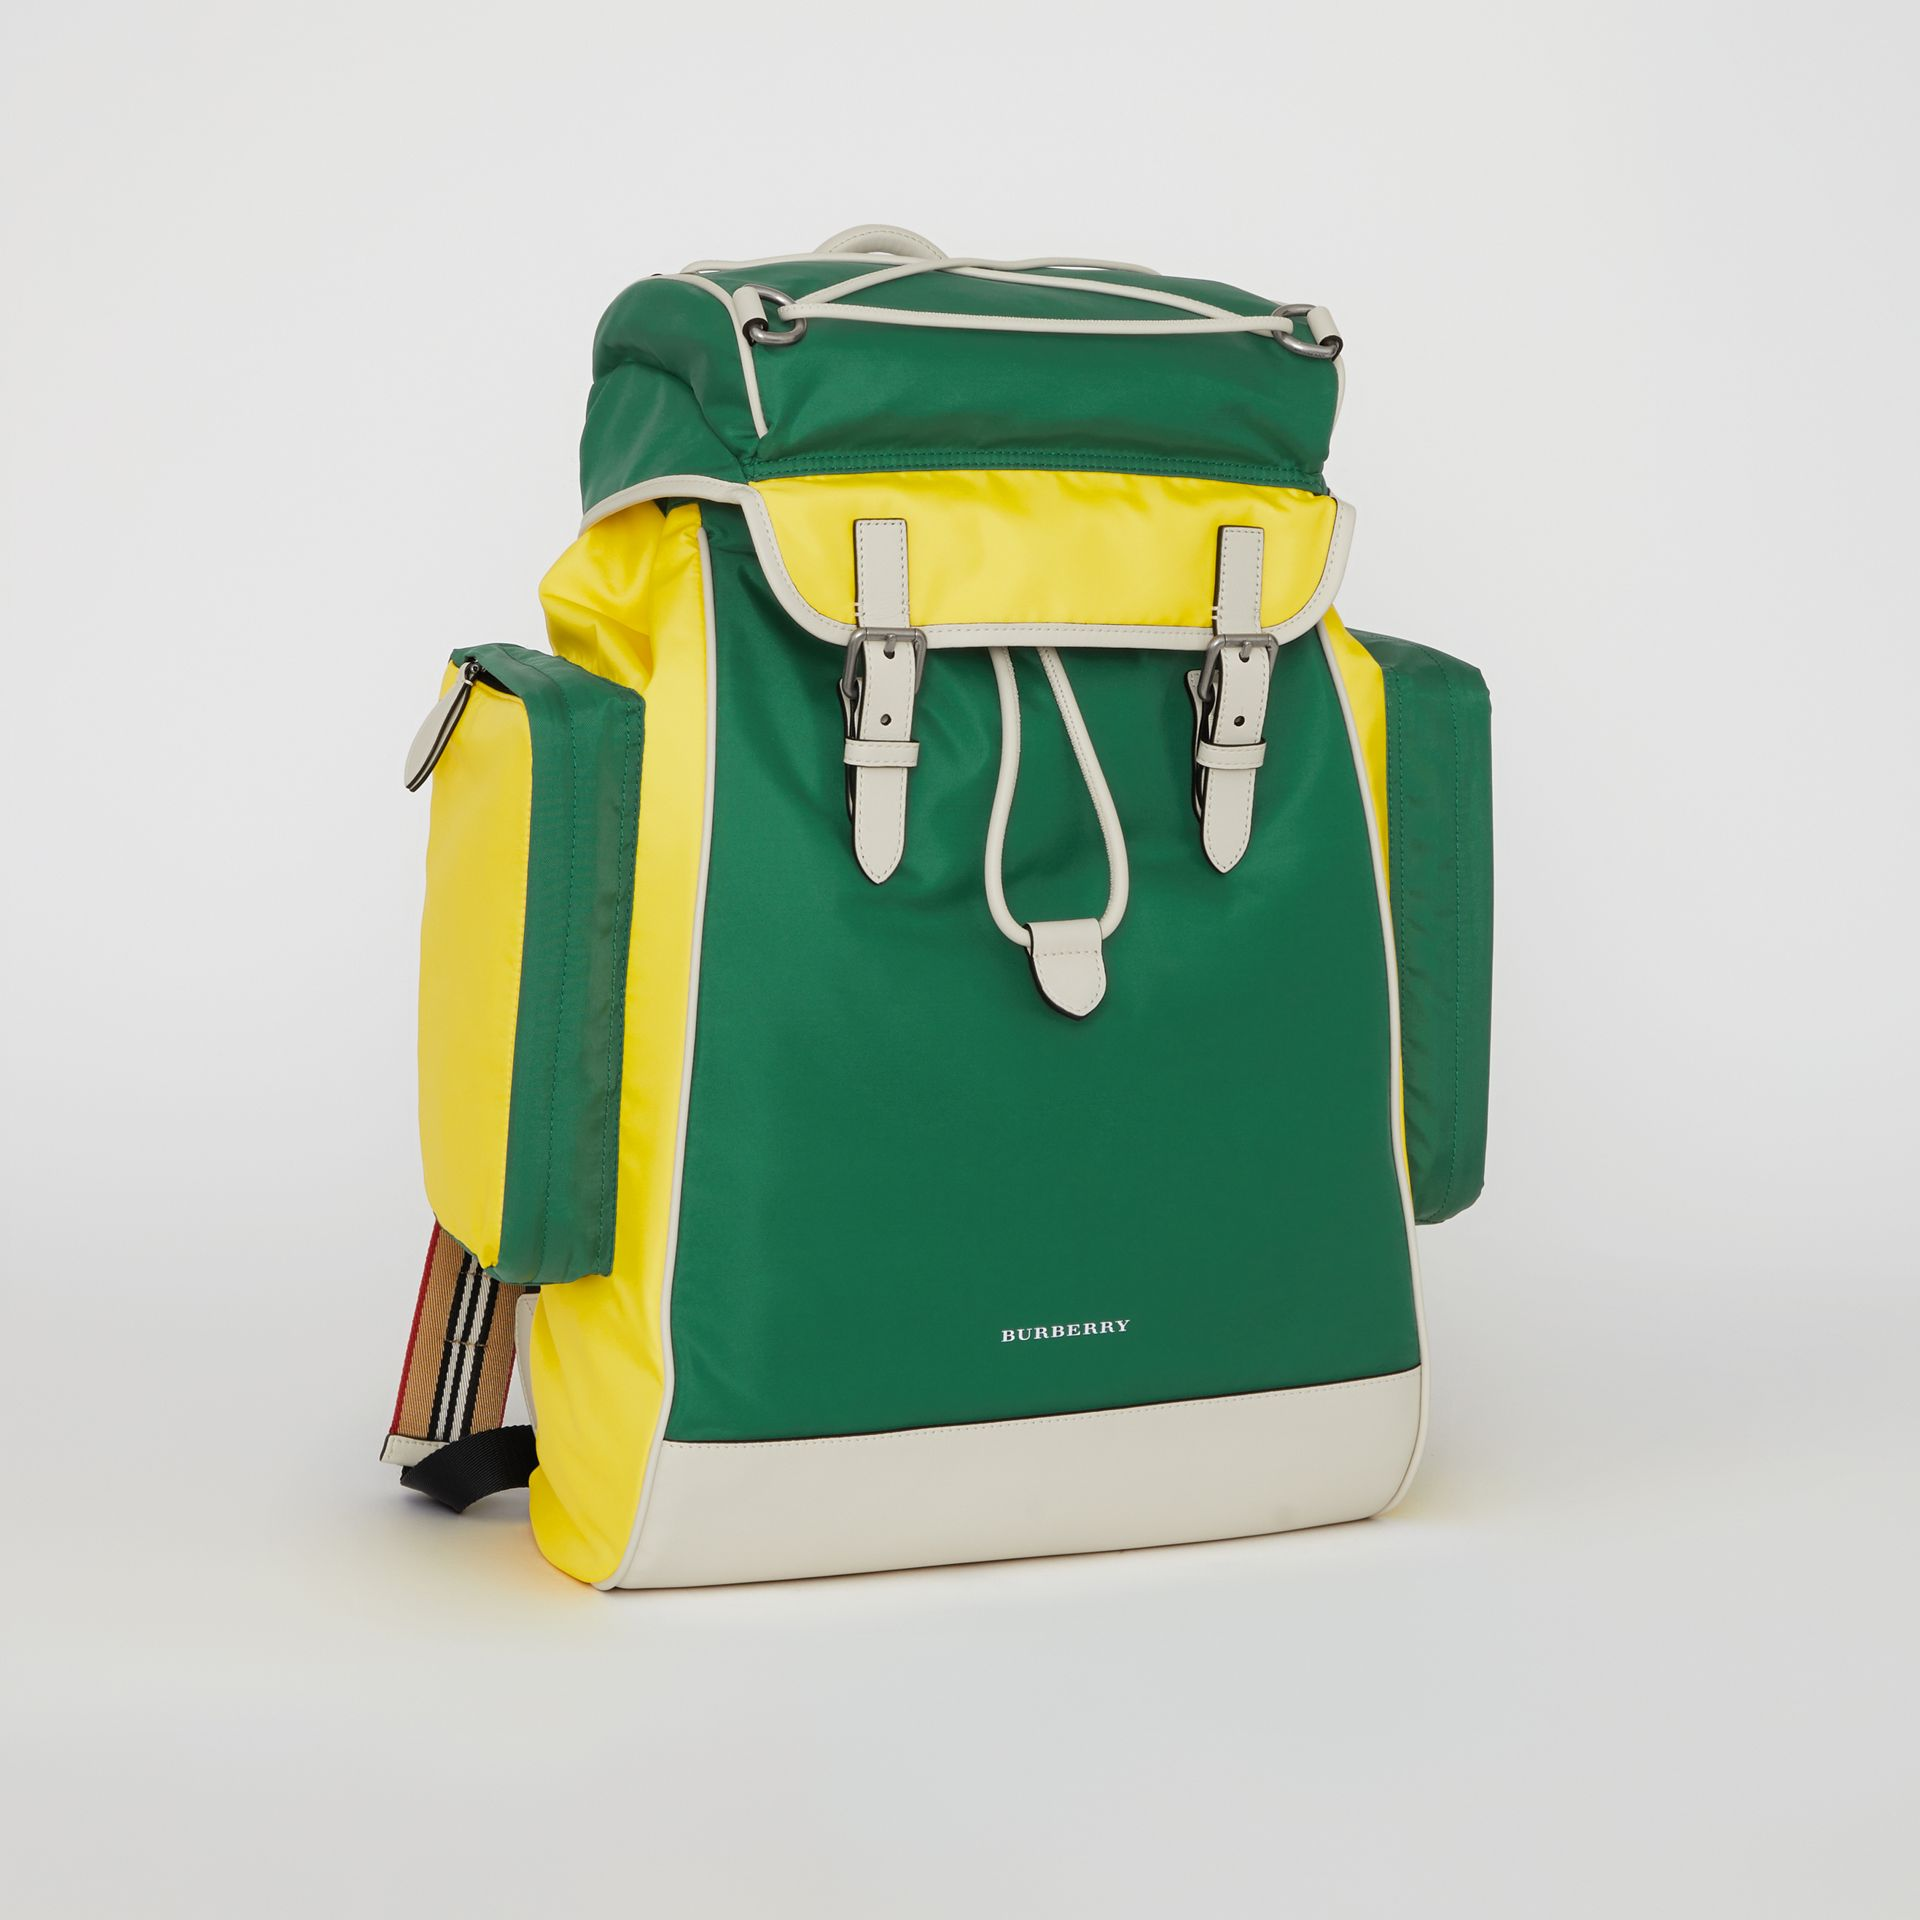 Tri-tone Nylon and Leather Backpack in Pine Green - Men | Burberry - gallery image 6